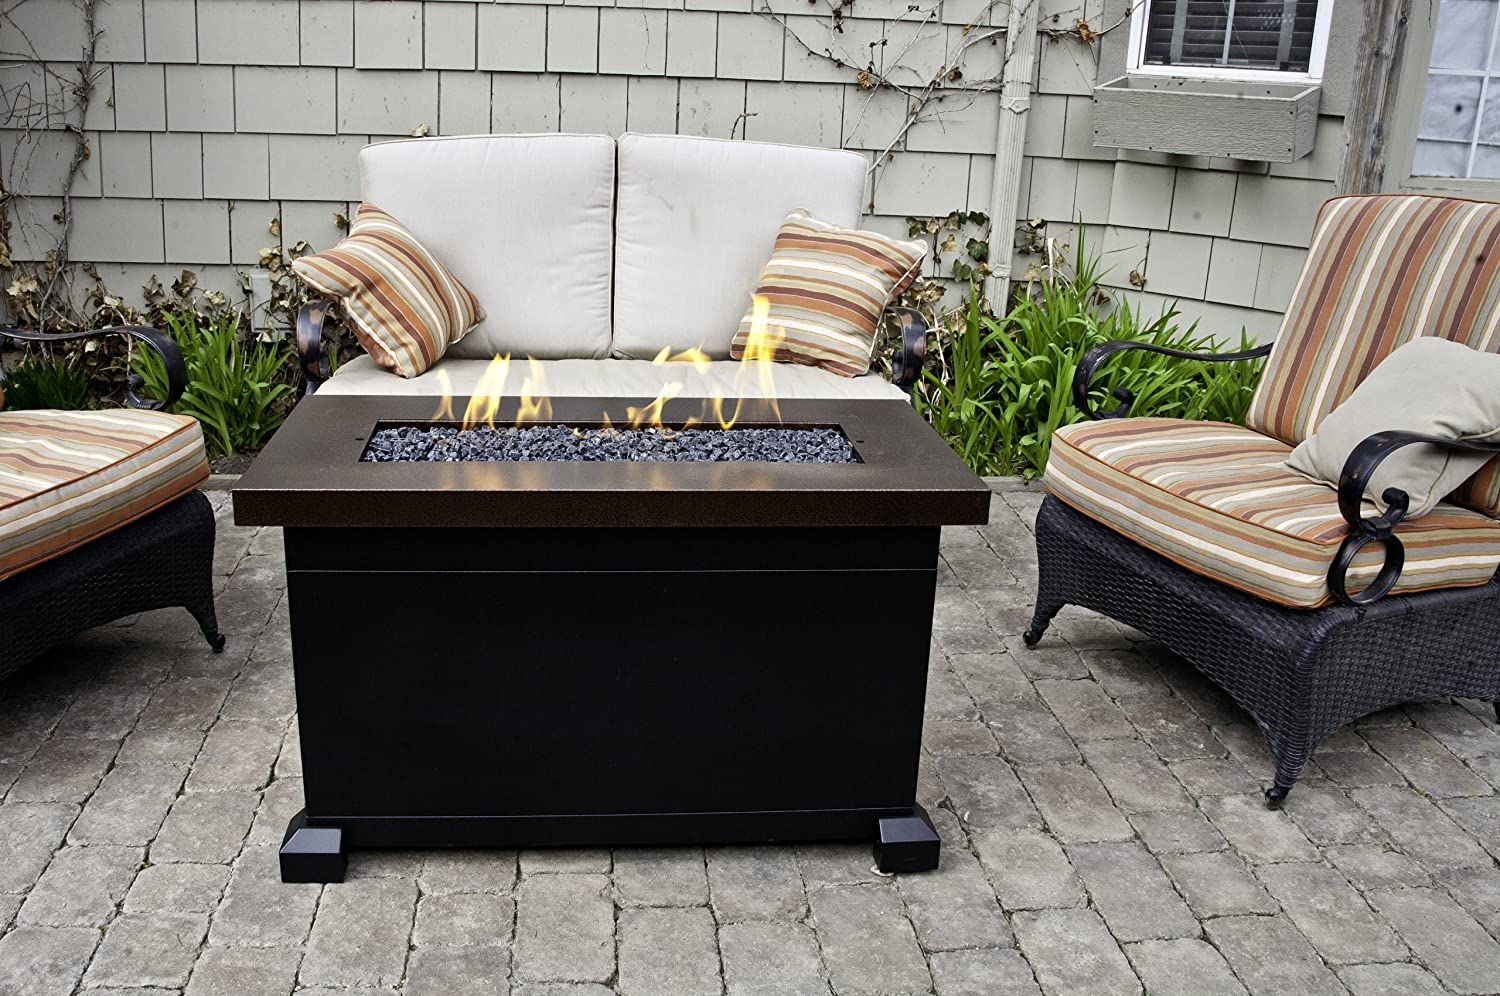 Wonderful Amazon.com : Camp Chef FP40 Monterey PropaneFire Pit Table With Fire Glass  U0026 Lid Included, Copper Color : Outdoor Fireplaces : Patio, Lawn U0026 Garden